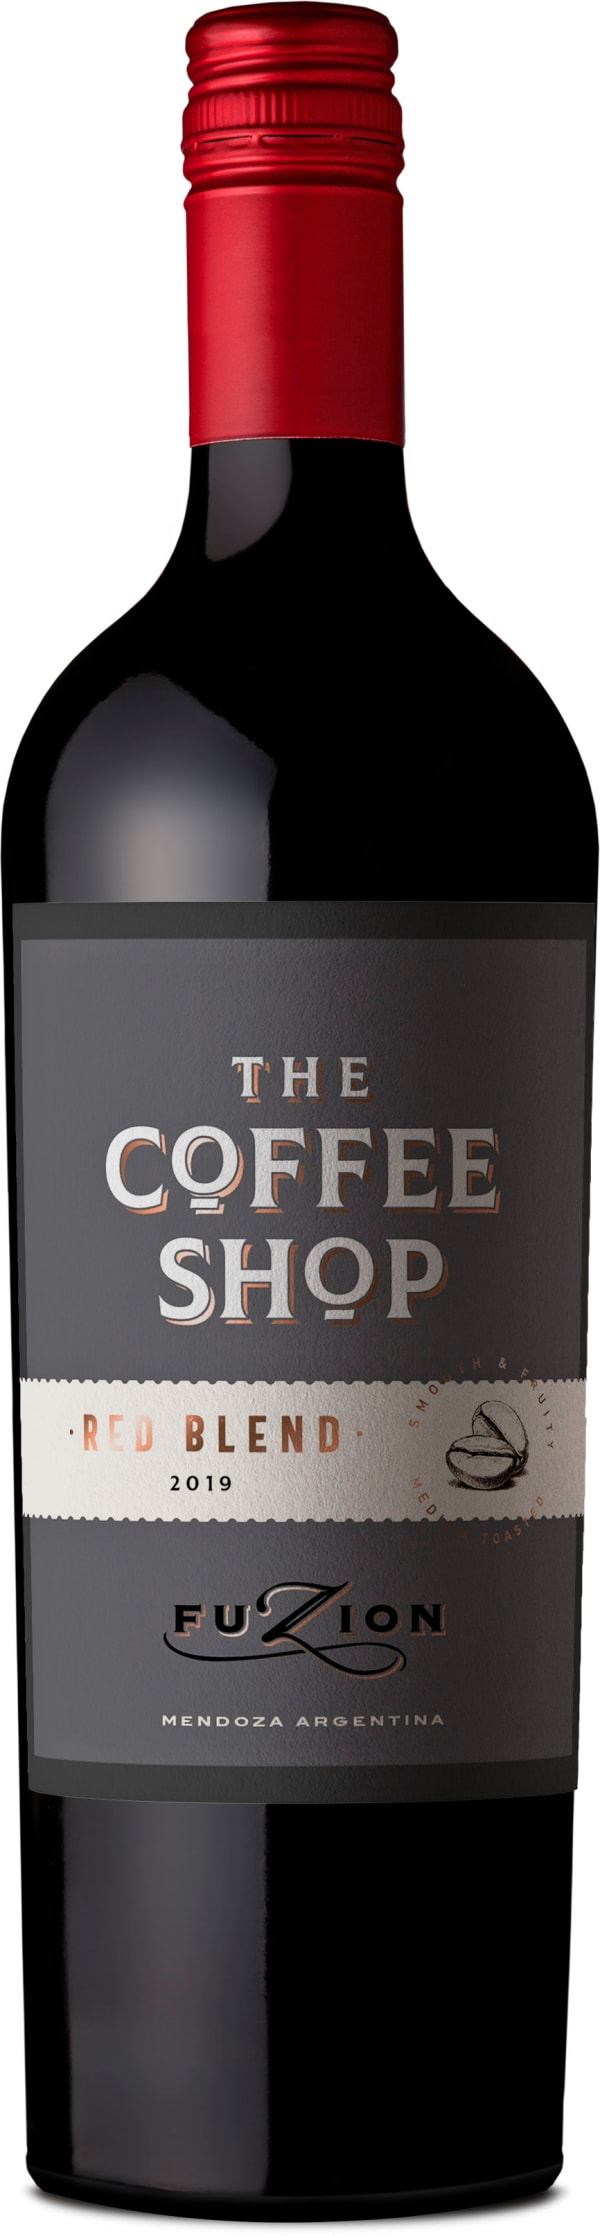 Fuzion The Coffee Shop Red Blend 2019